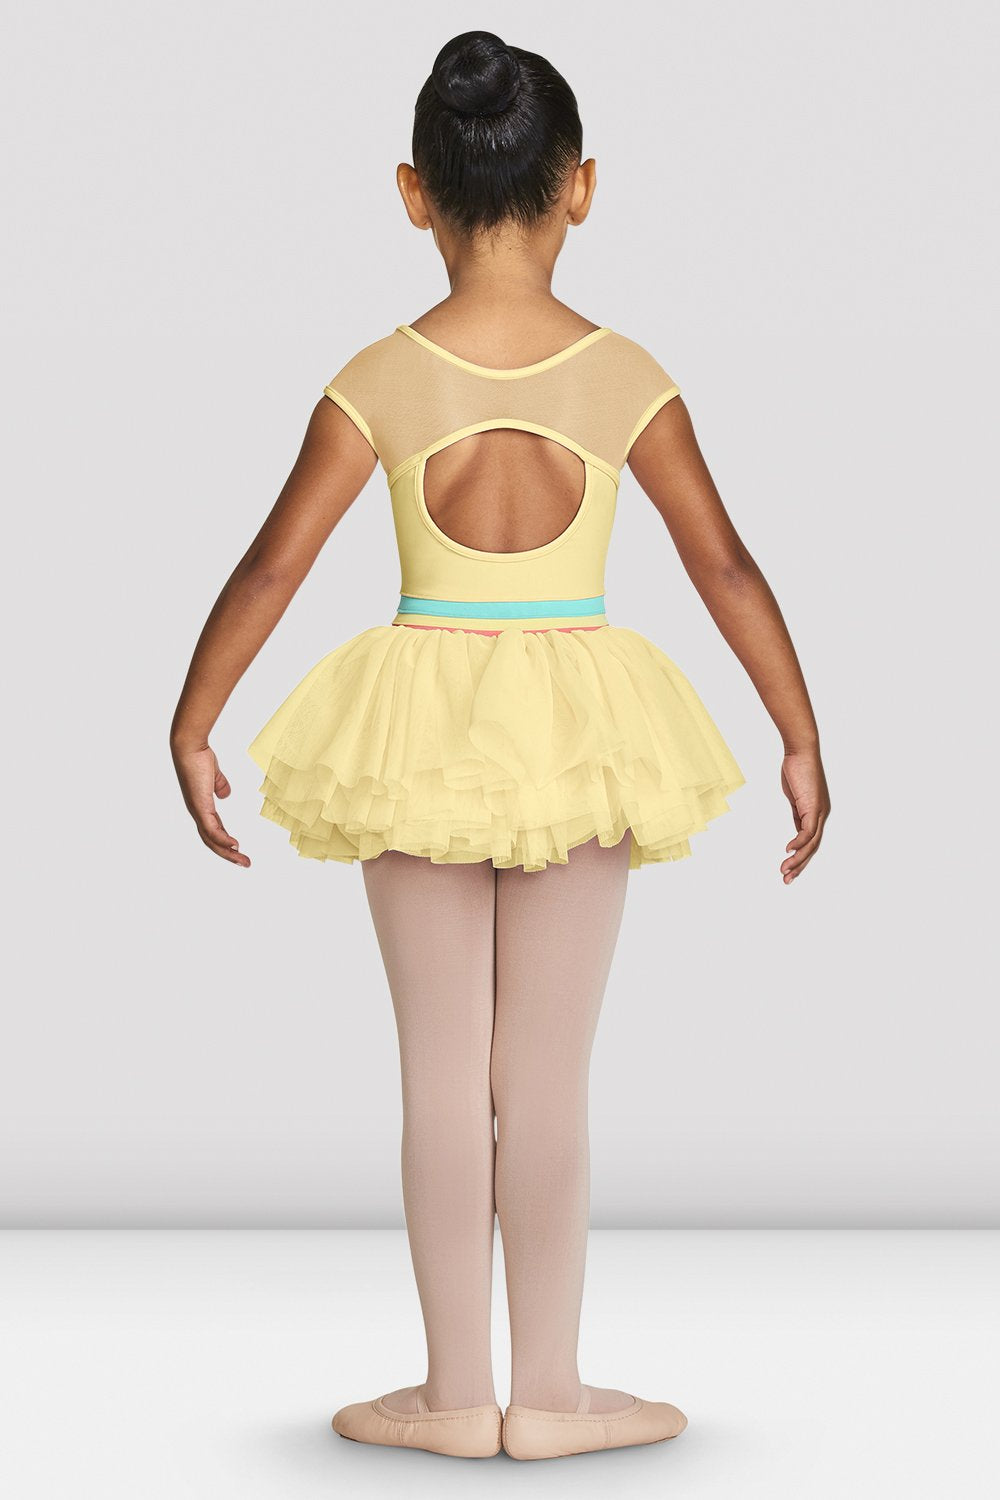 Sunshine Bloch Girls Mabel Cap Sleeve Tutu Leotard with mesh cut out back on female model feet in first position with arms in demi bras facing back